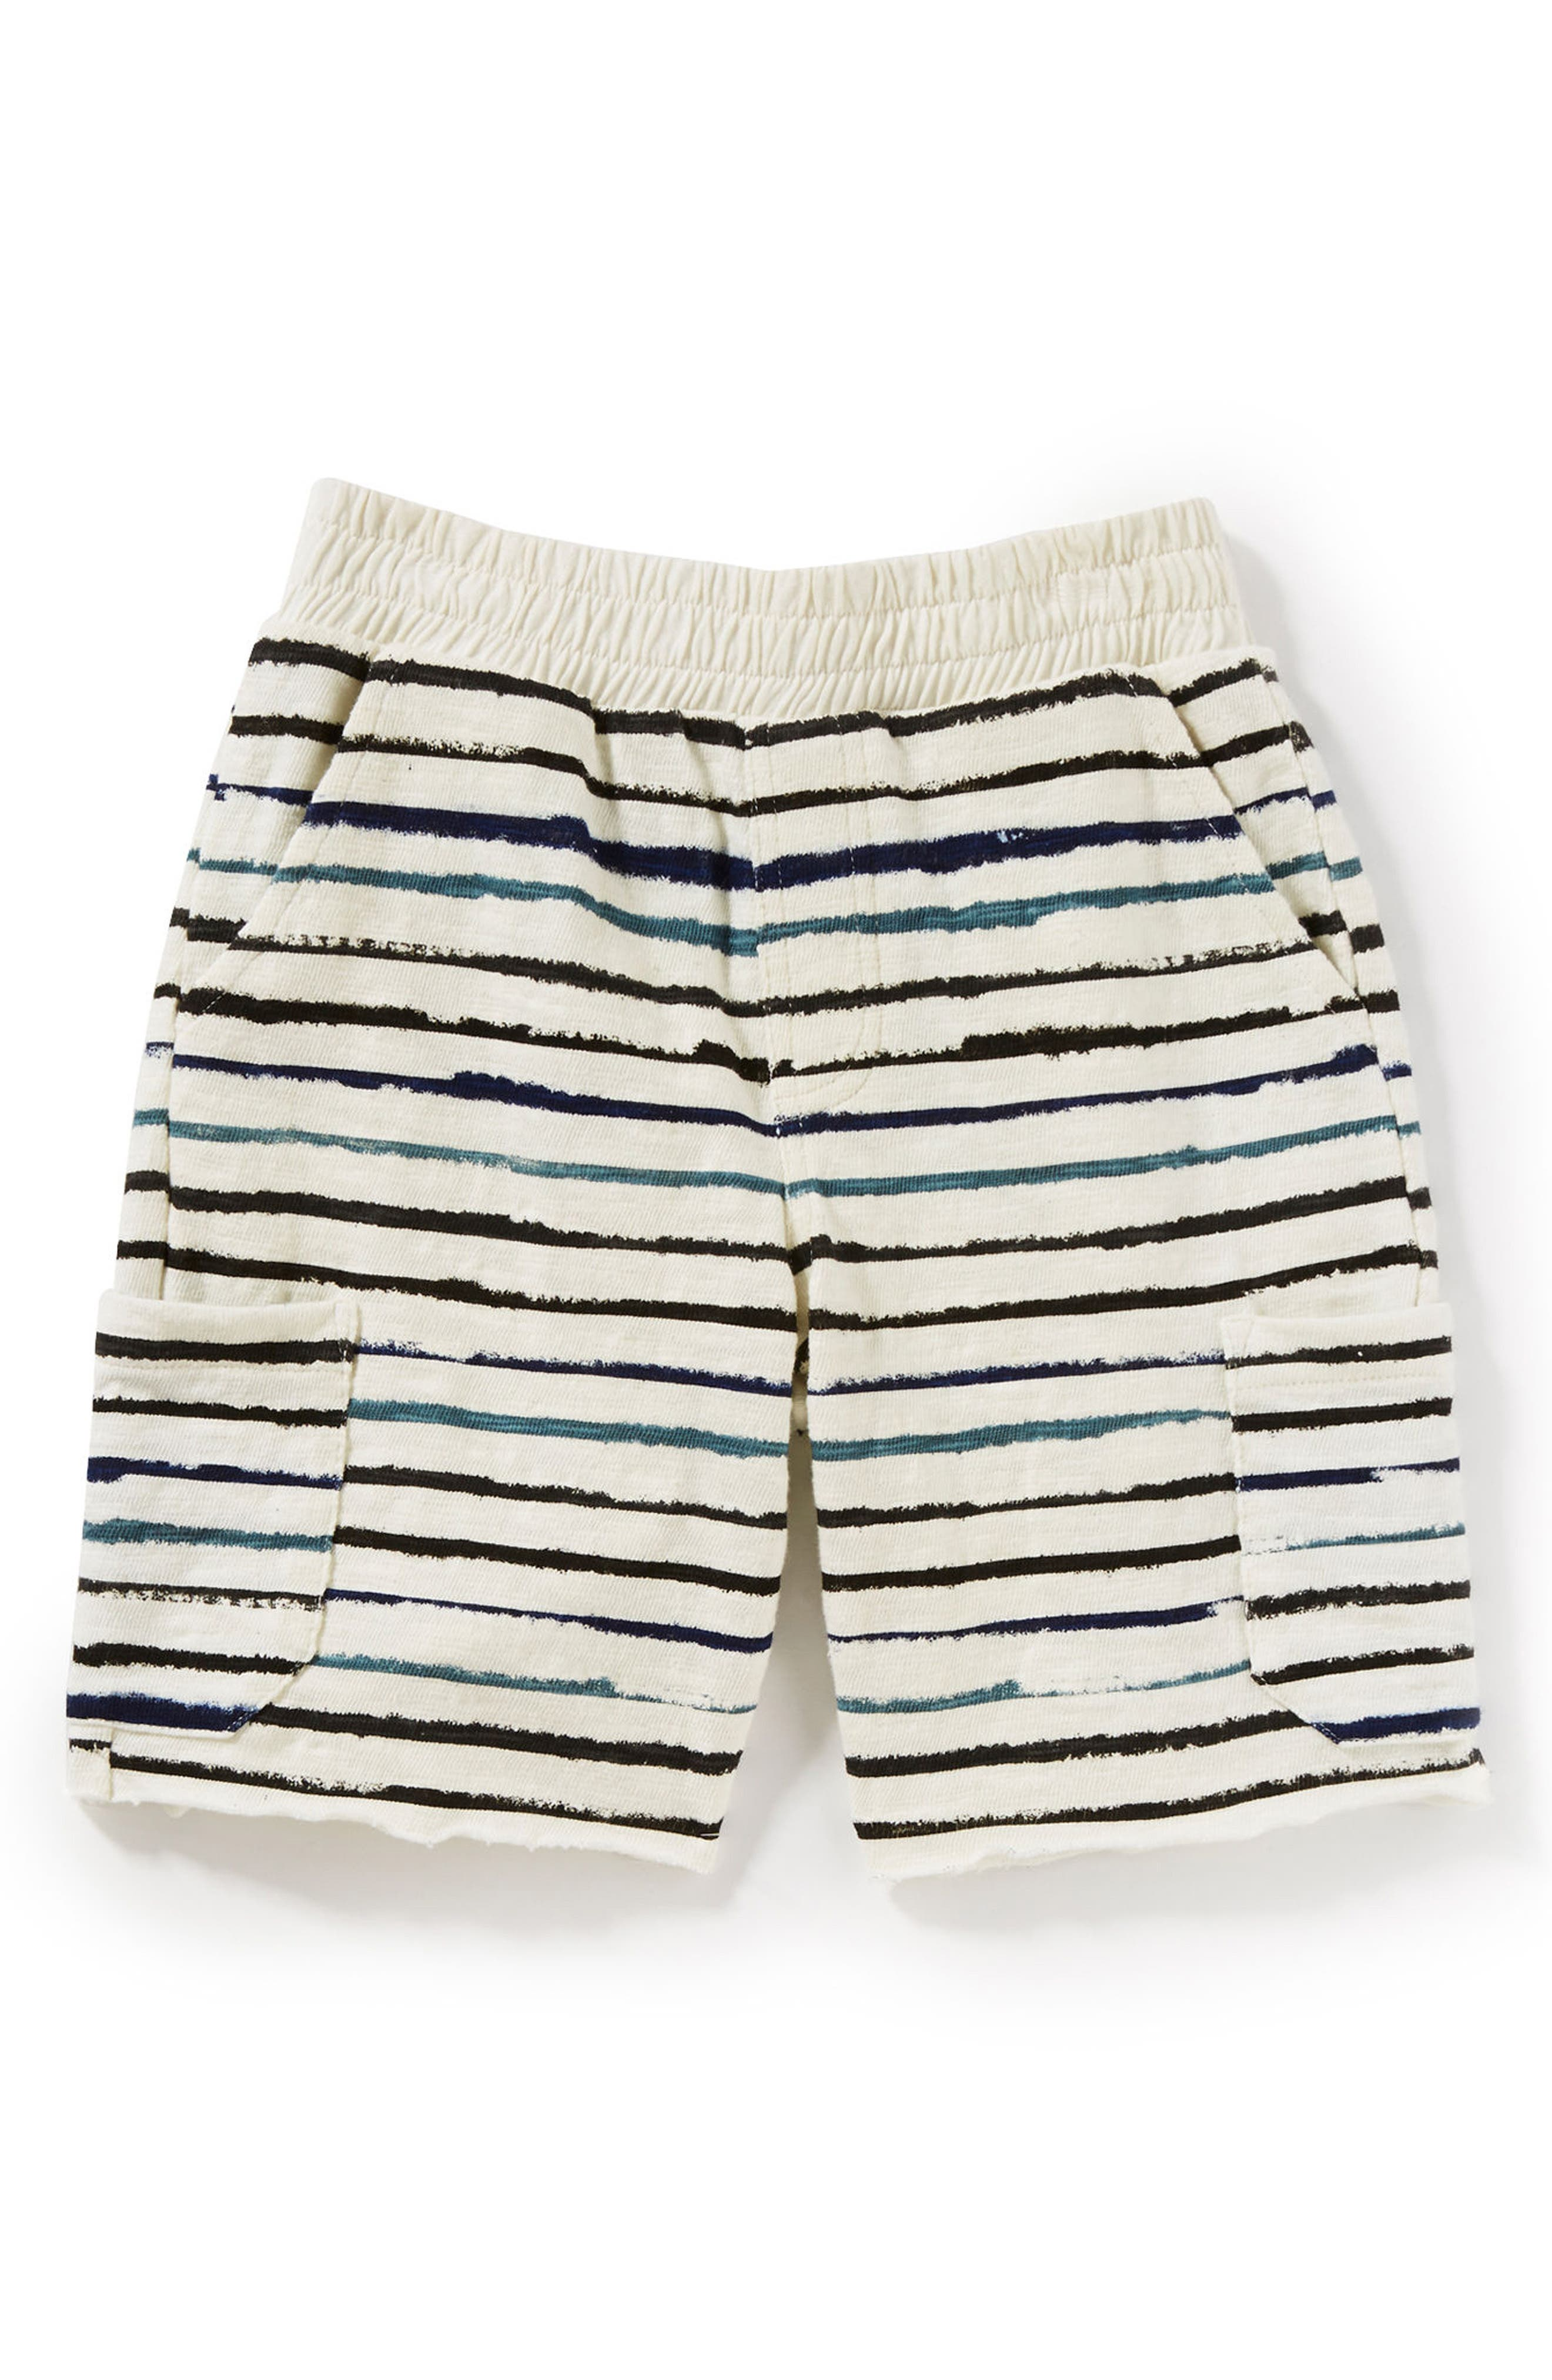 Asher Stripe Shorts,                         Main,                         color, Ivory